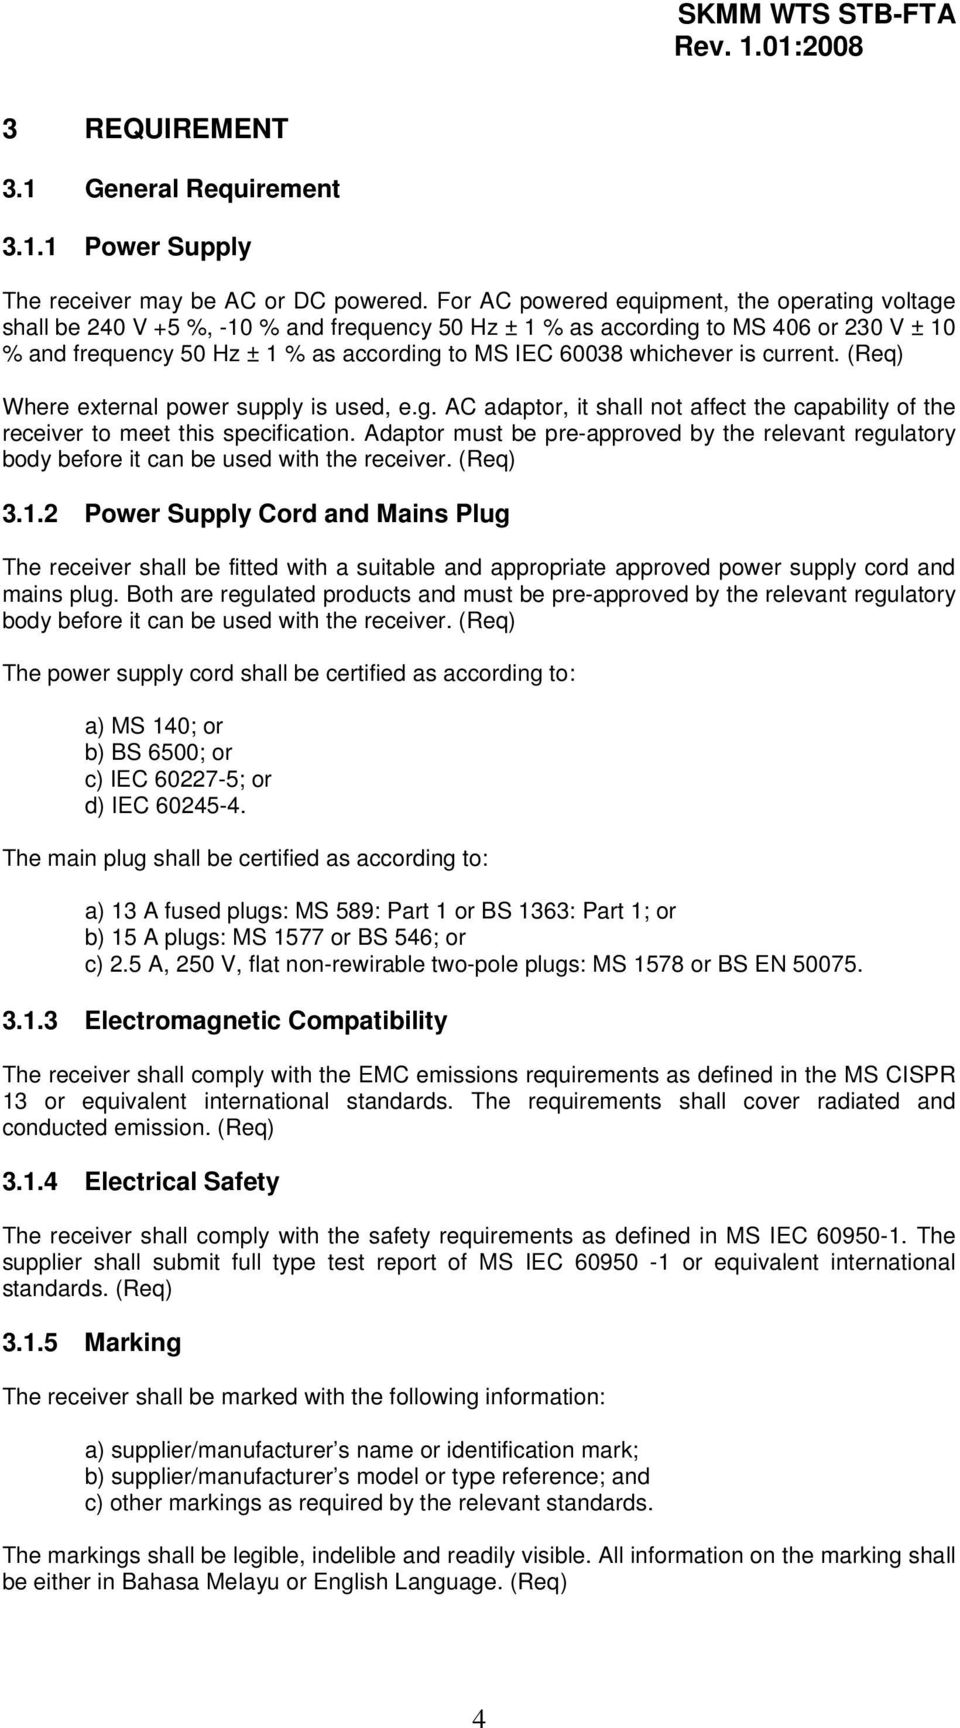 whichever is current. (Req) Where external power supply is used, e.g. AC adaptor, it shall not affect the capability of the receiver to meet this specification.